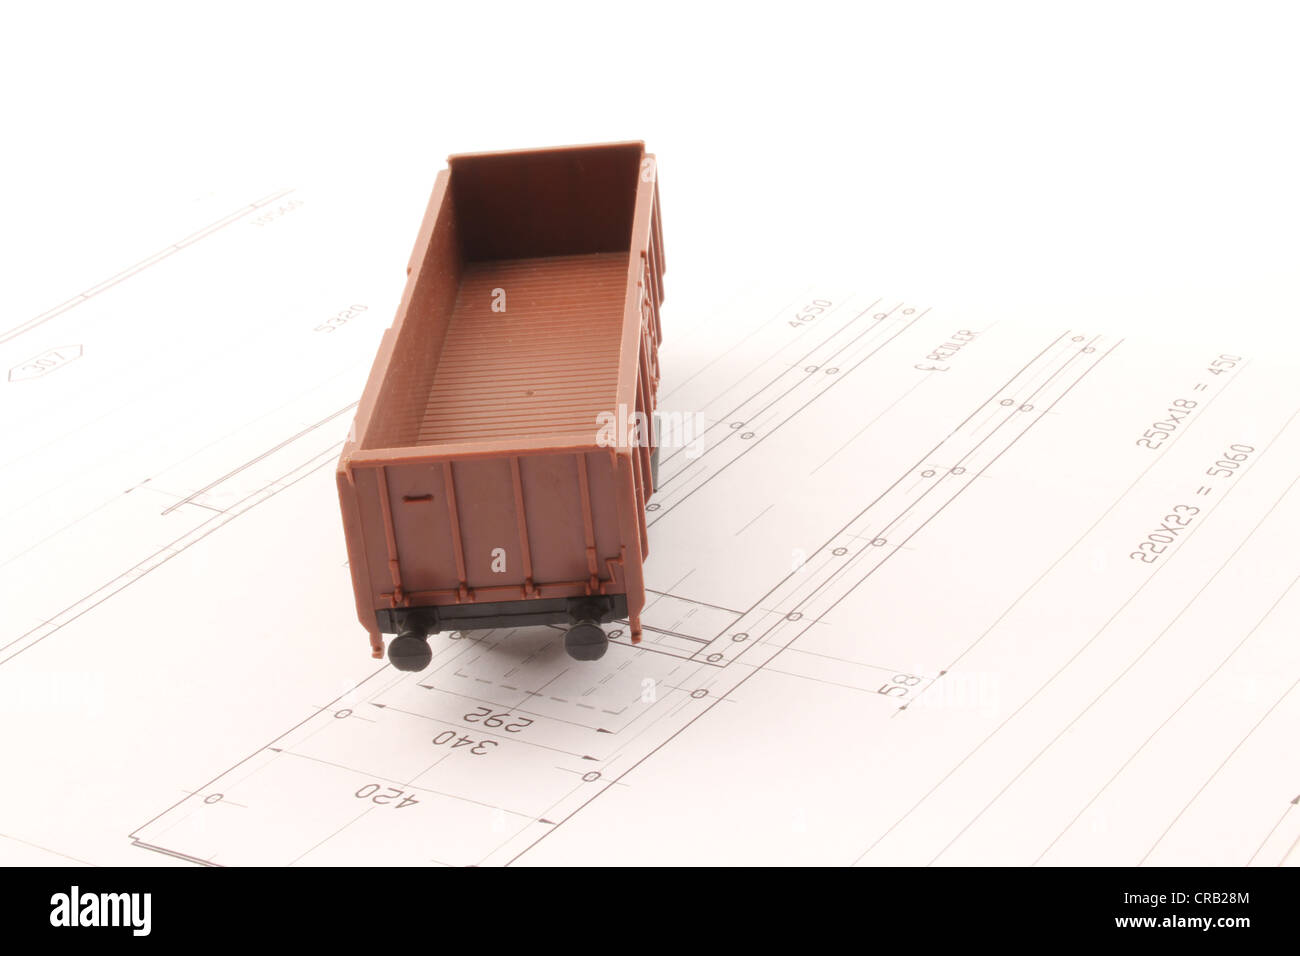 Design of a wagon toy merchandise. - Stock Image